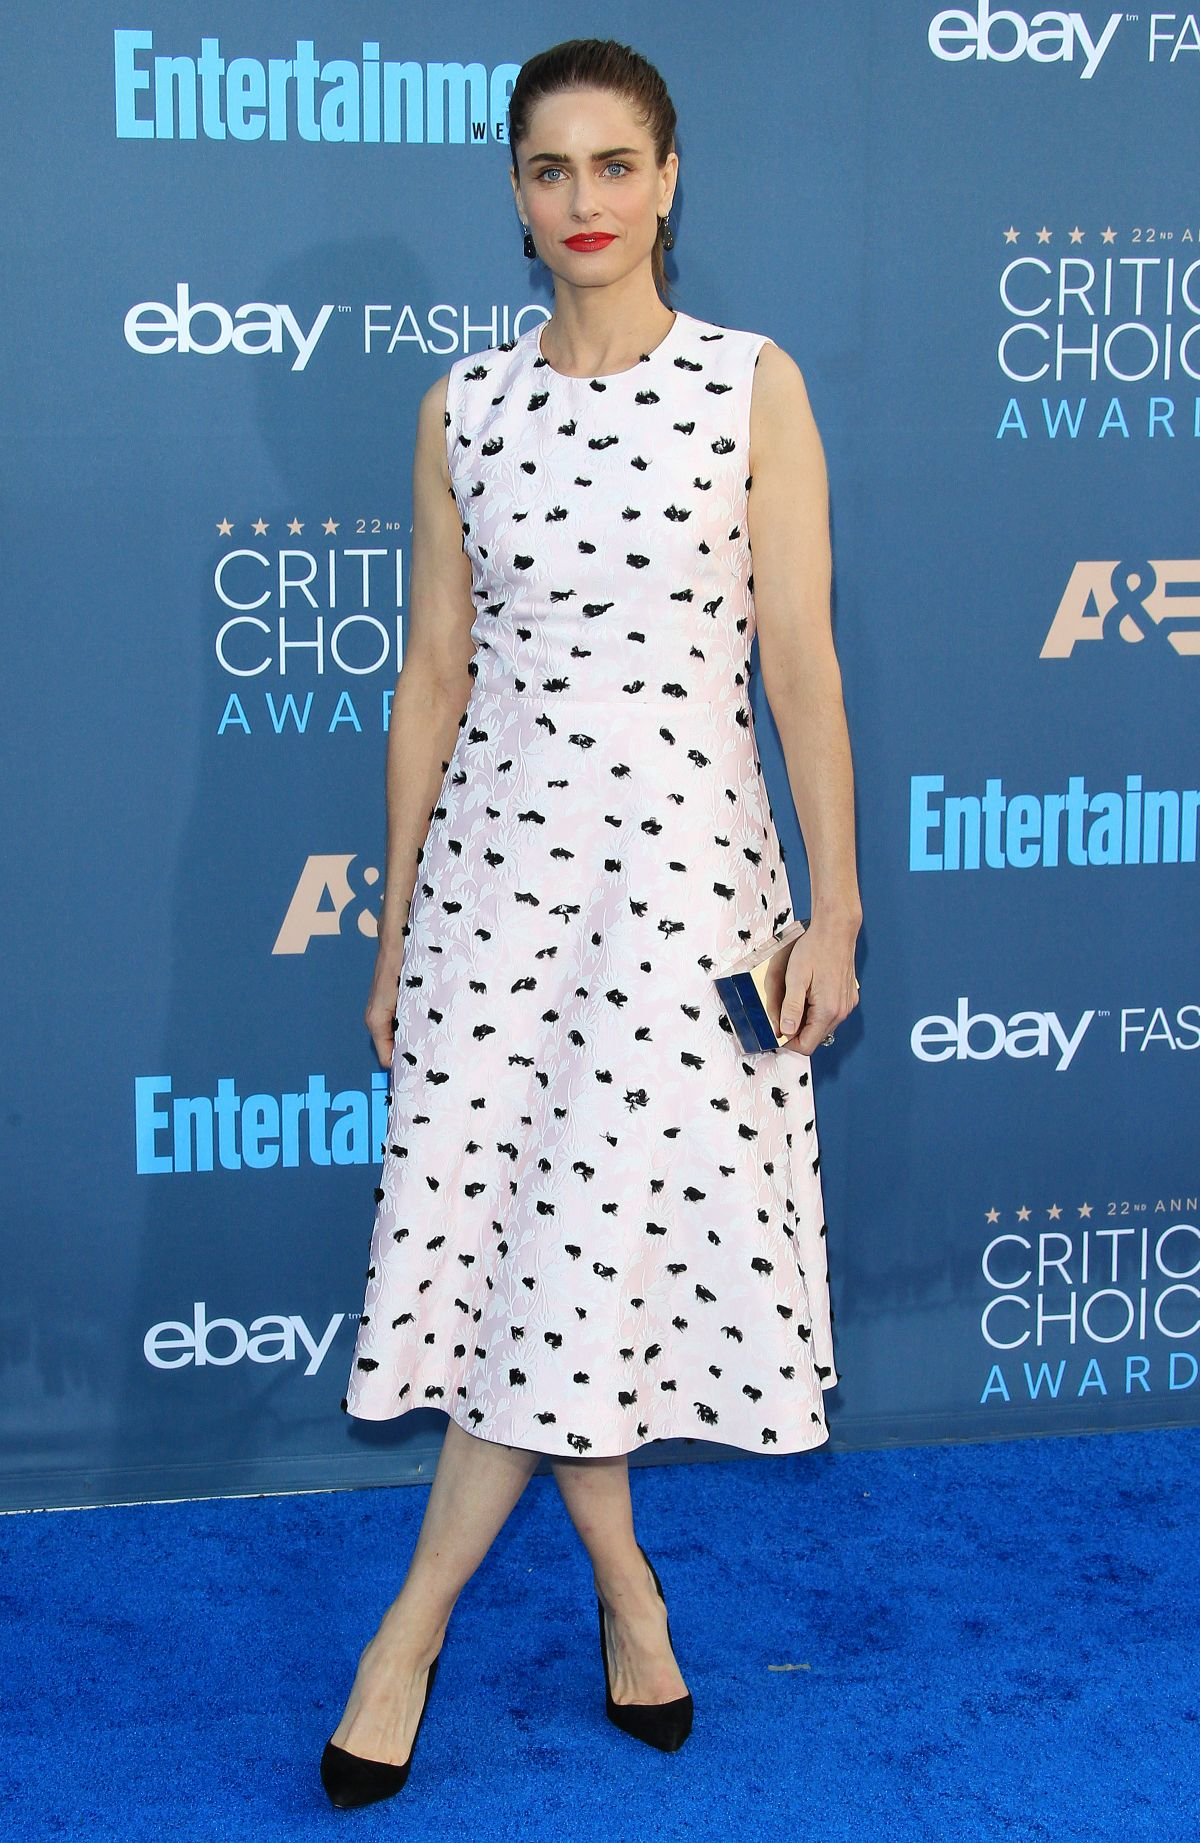 Amanda Peet At The 22nd Annual Critics' Choice Awards in Santa Monica   amanda-peet-at-the-22nd-annual-critics-choice-awards-in-santa-monica-_6